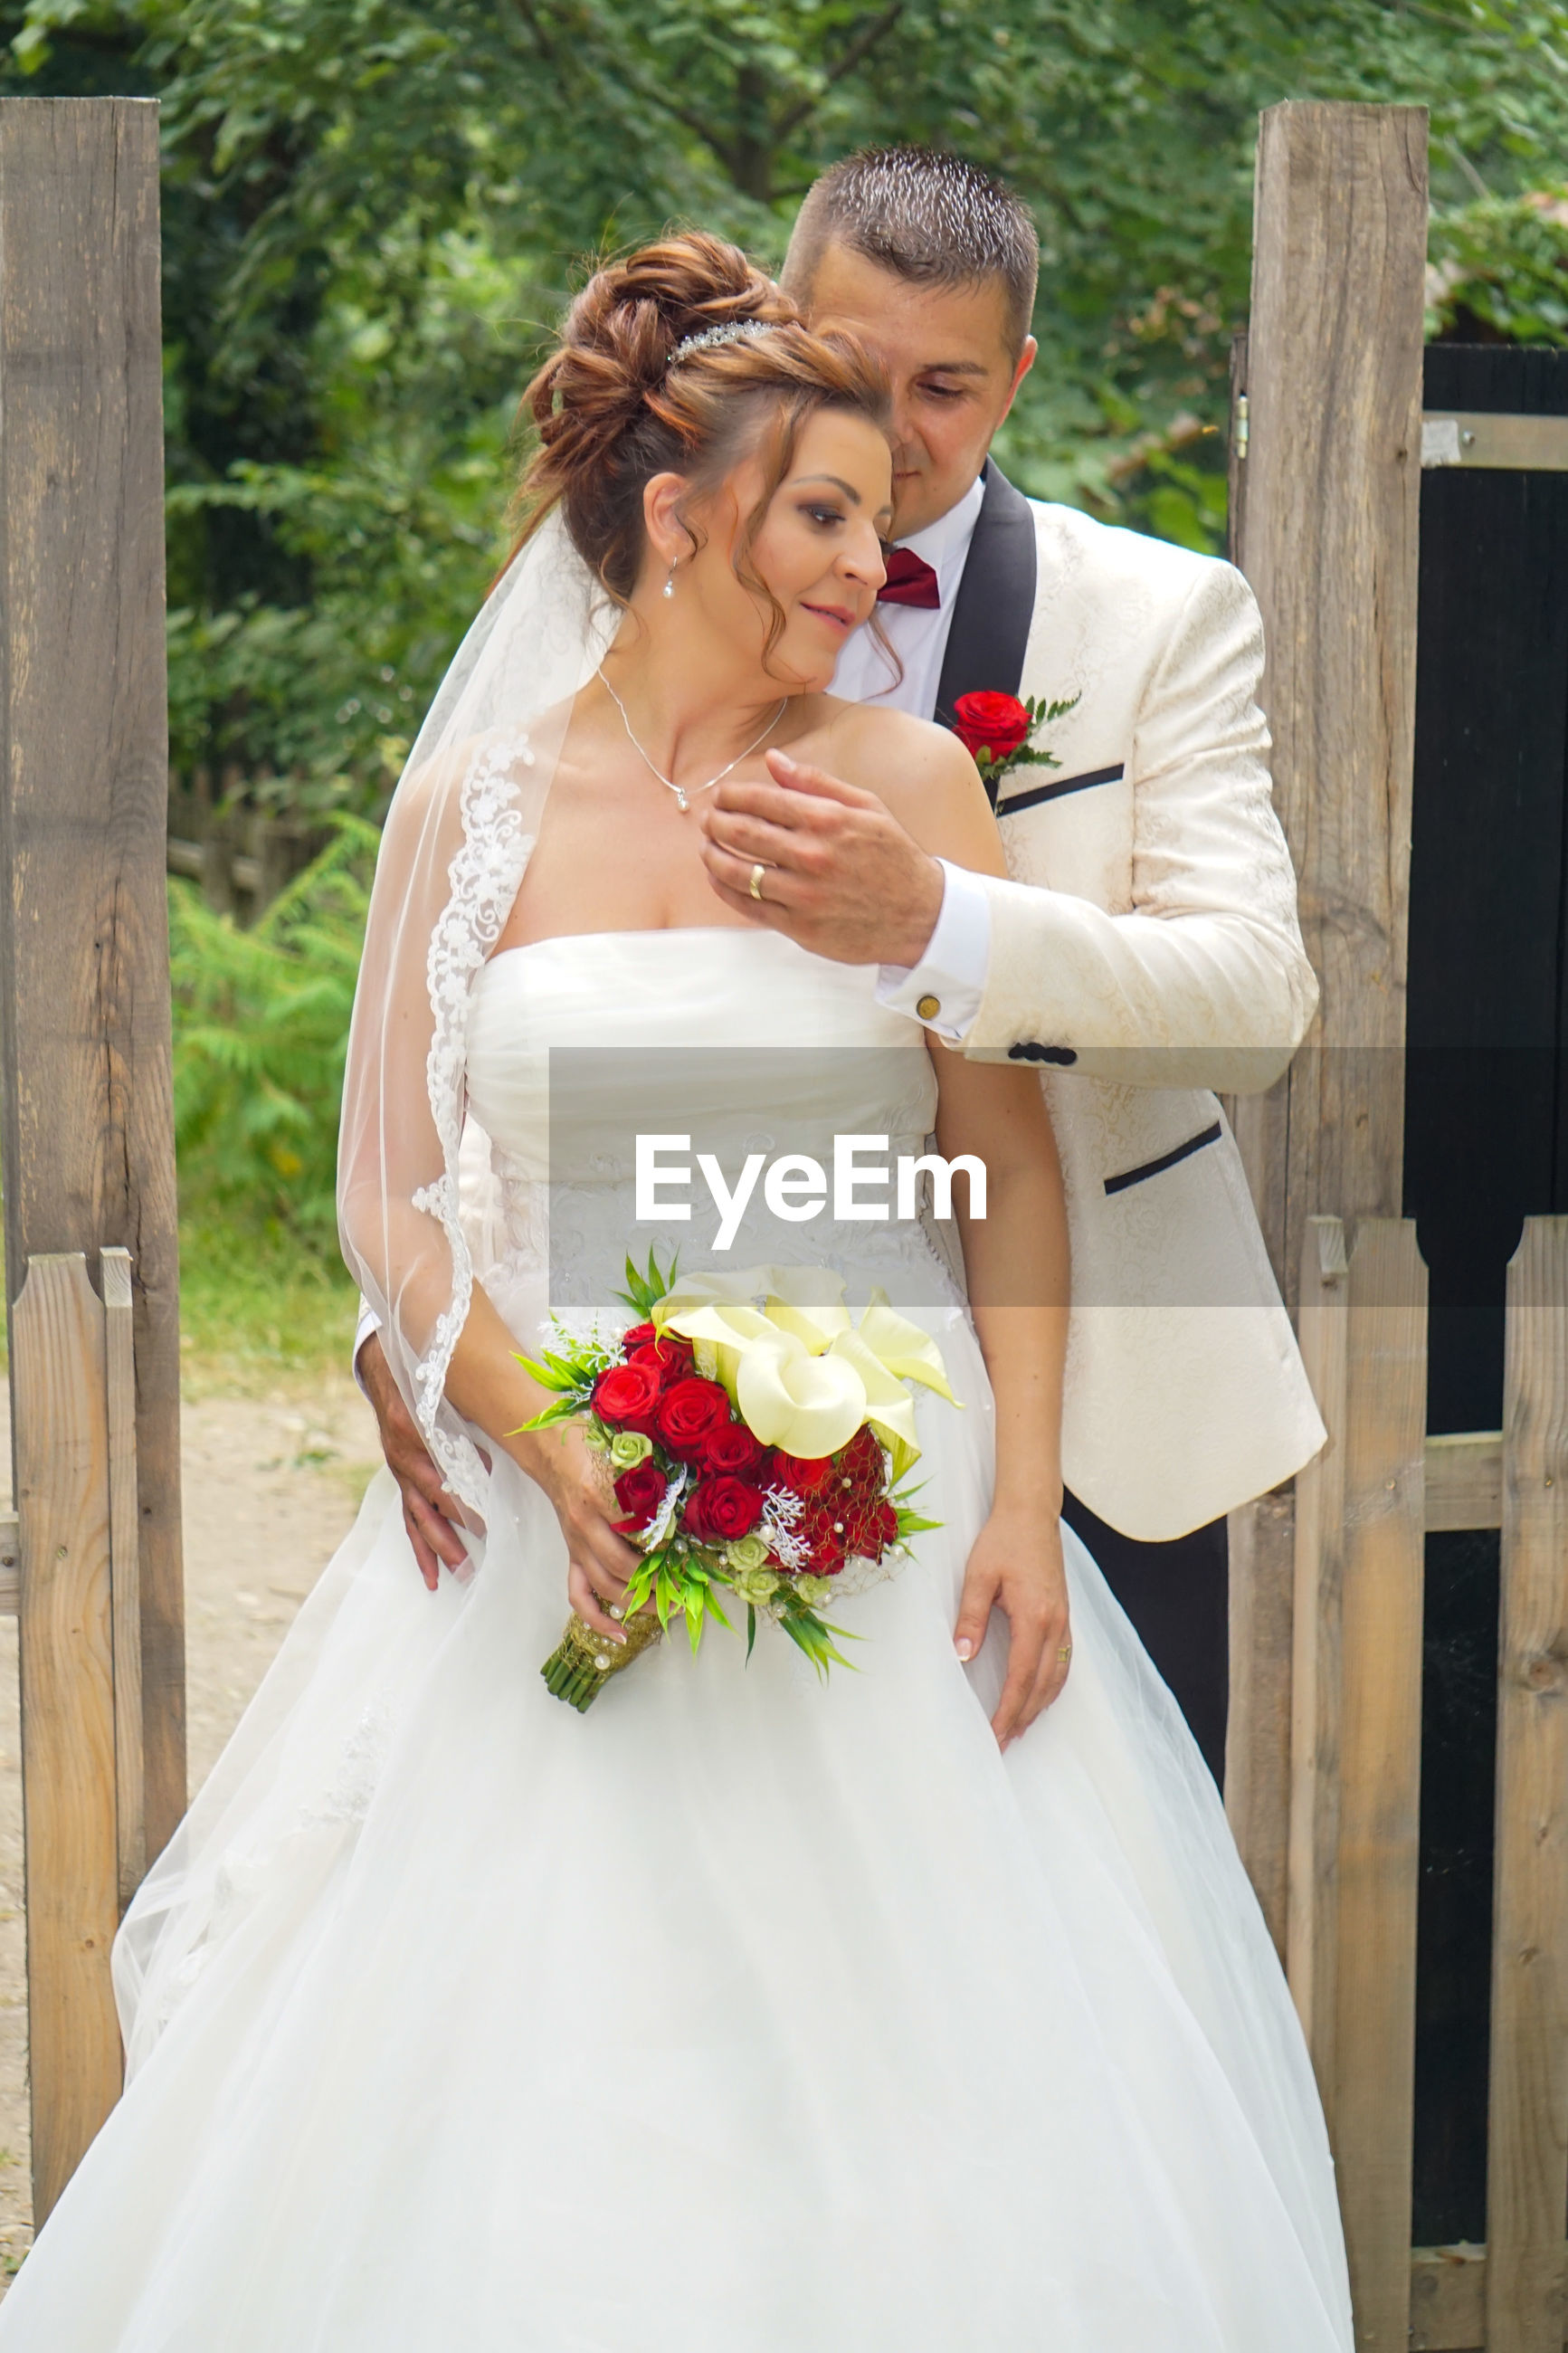 Bride and groom holding flower bouquet while standing against trees